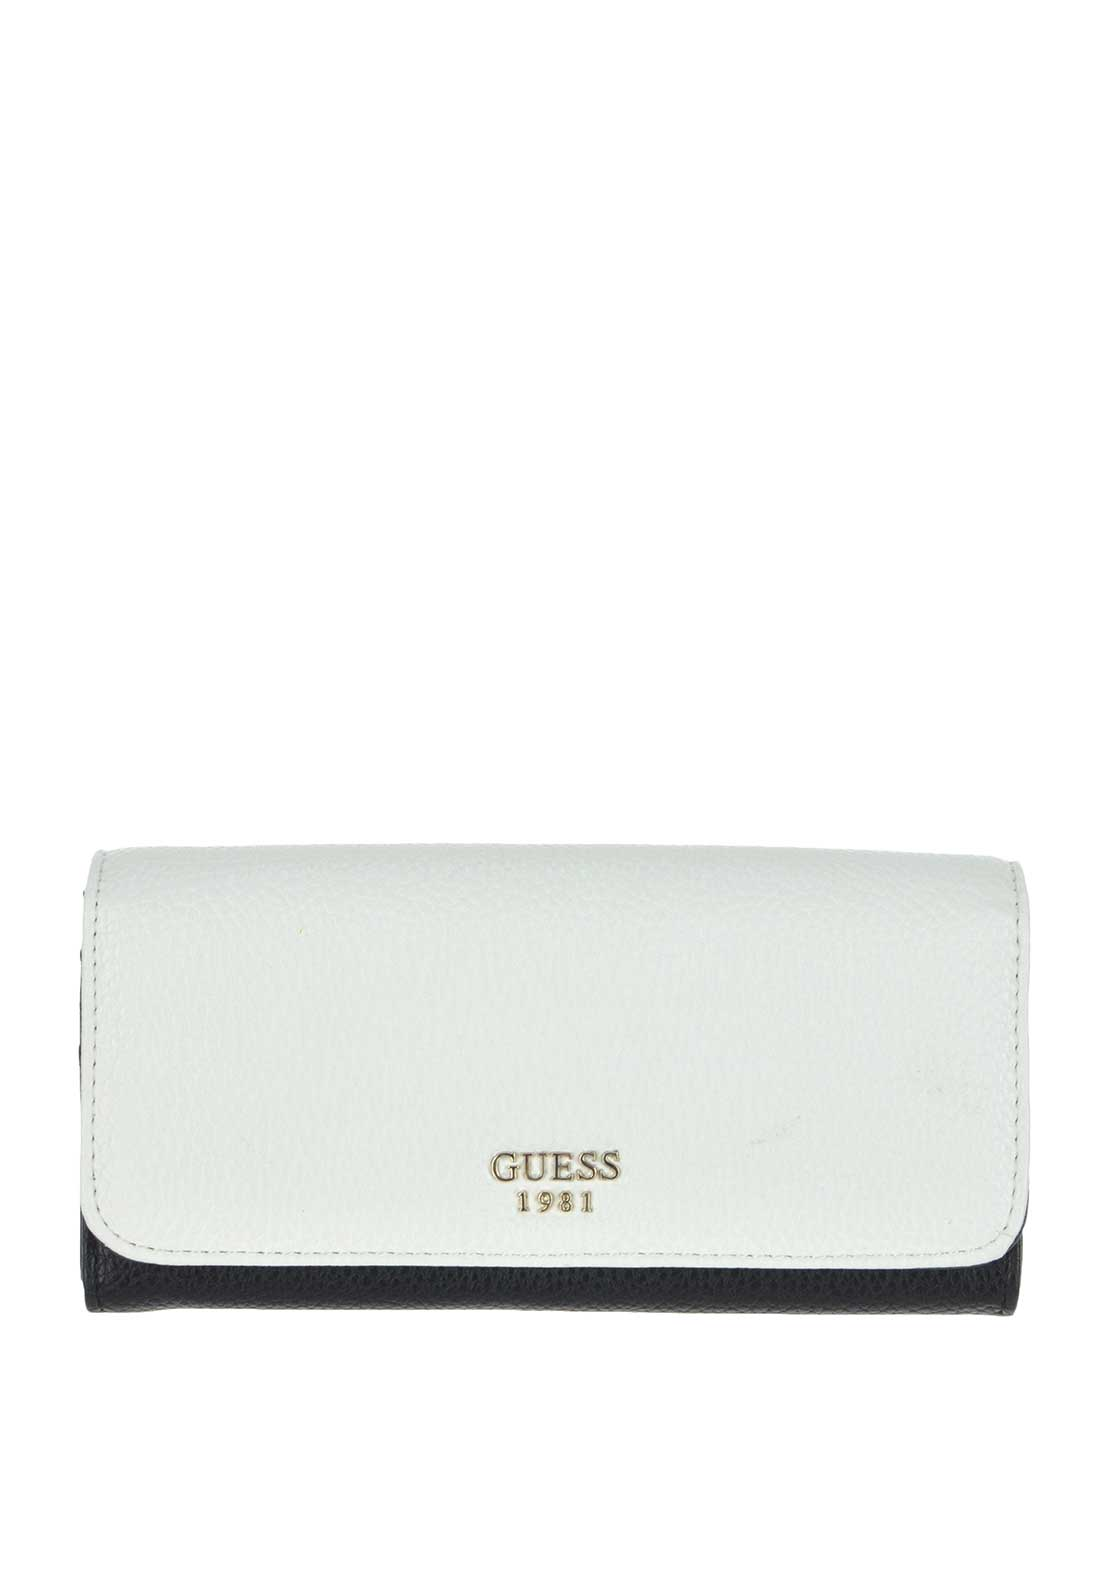 Guess Cate Large Flap Wallet, White and Black